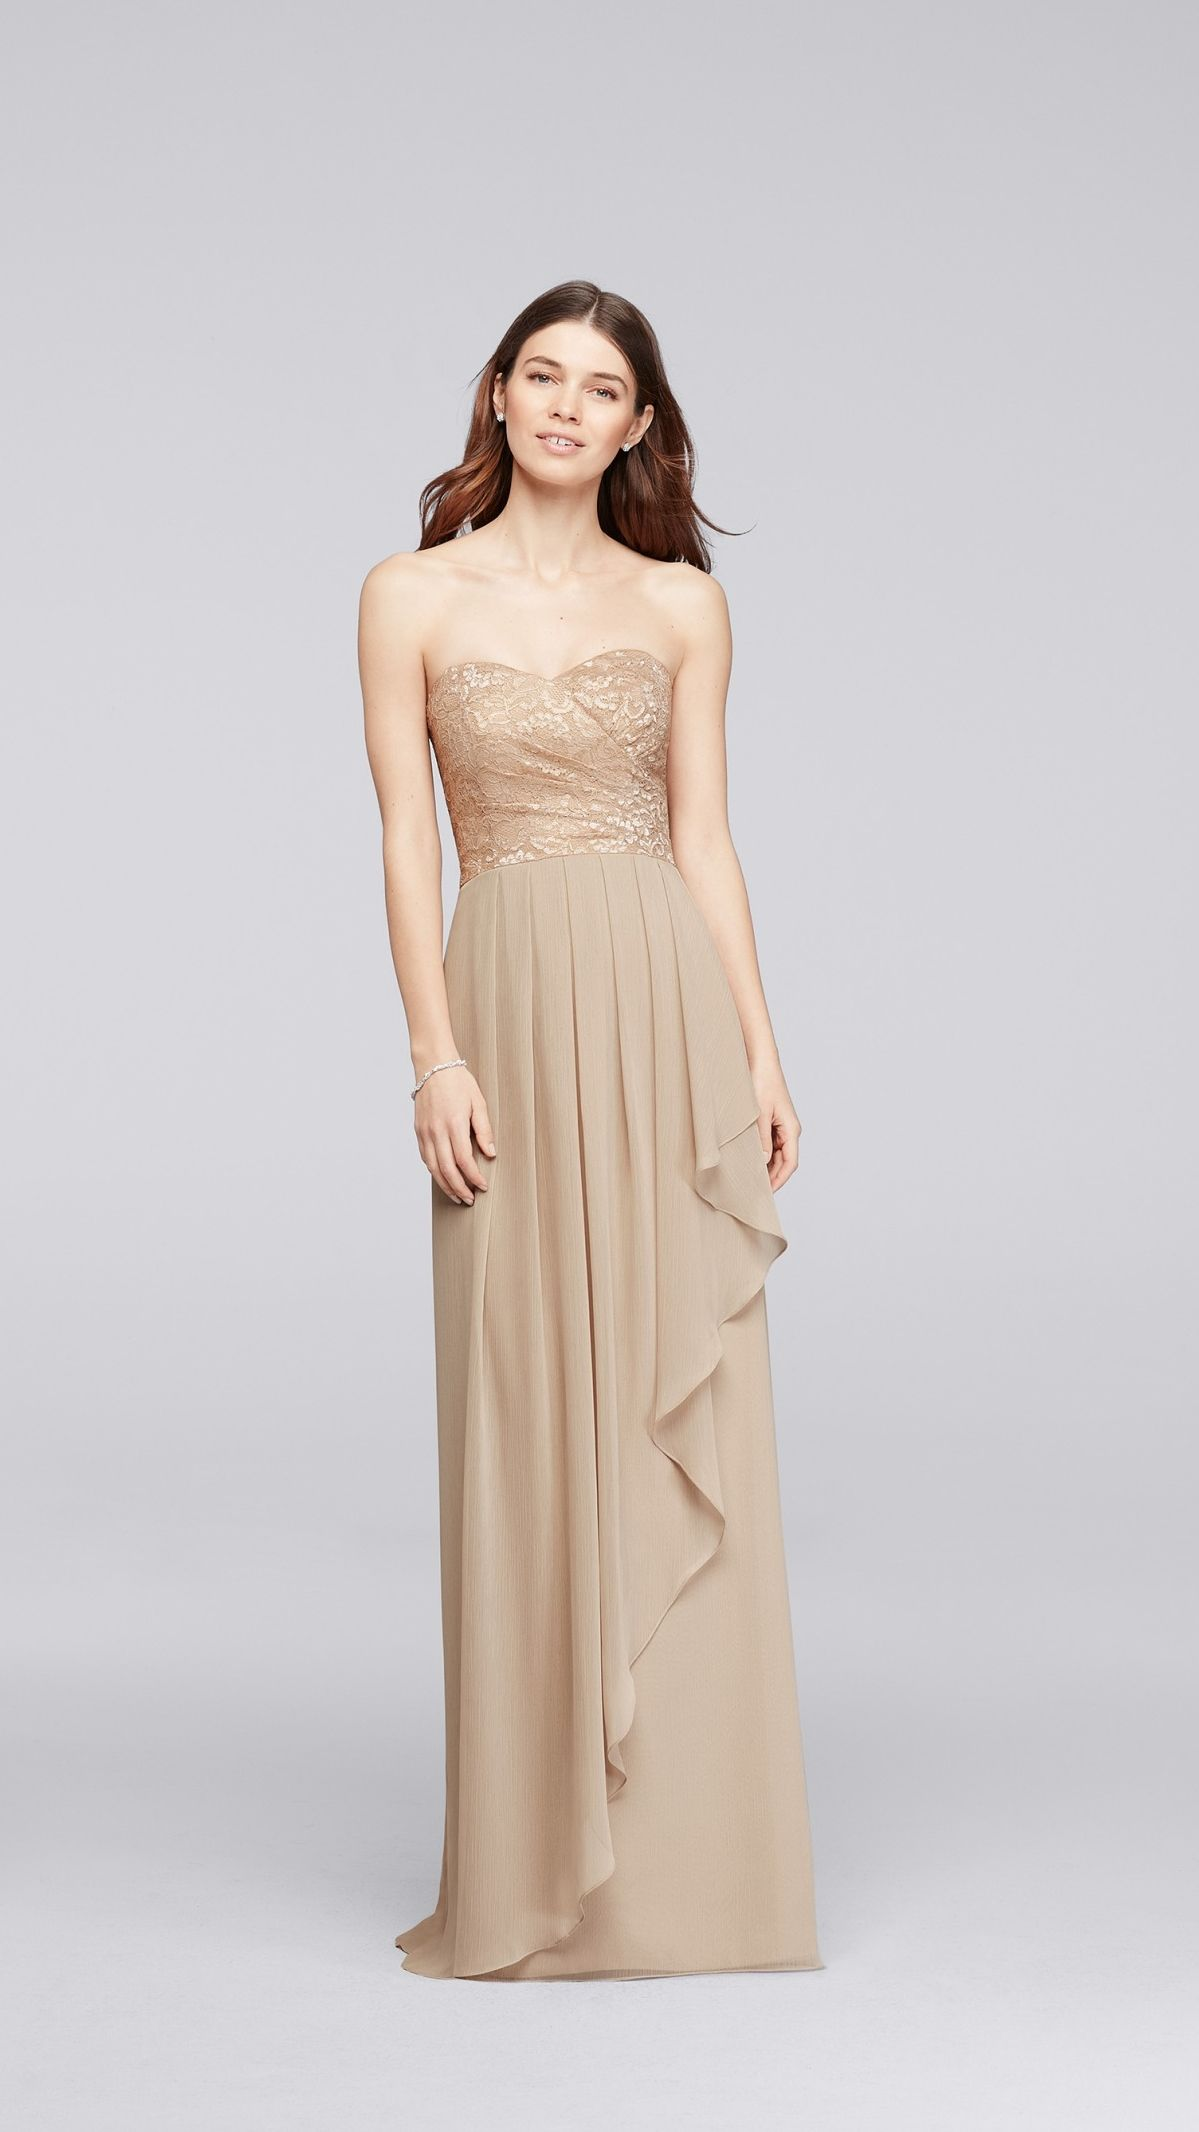 Shimmering gold metallic lace and mesh bridesmaid dress looks